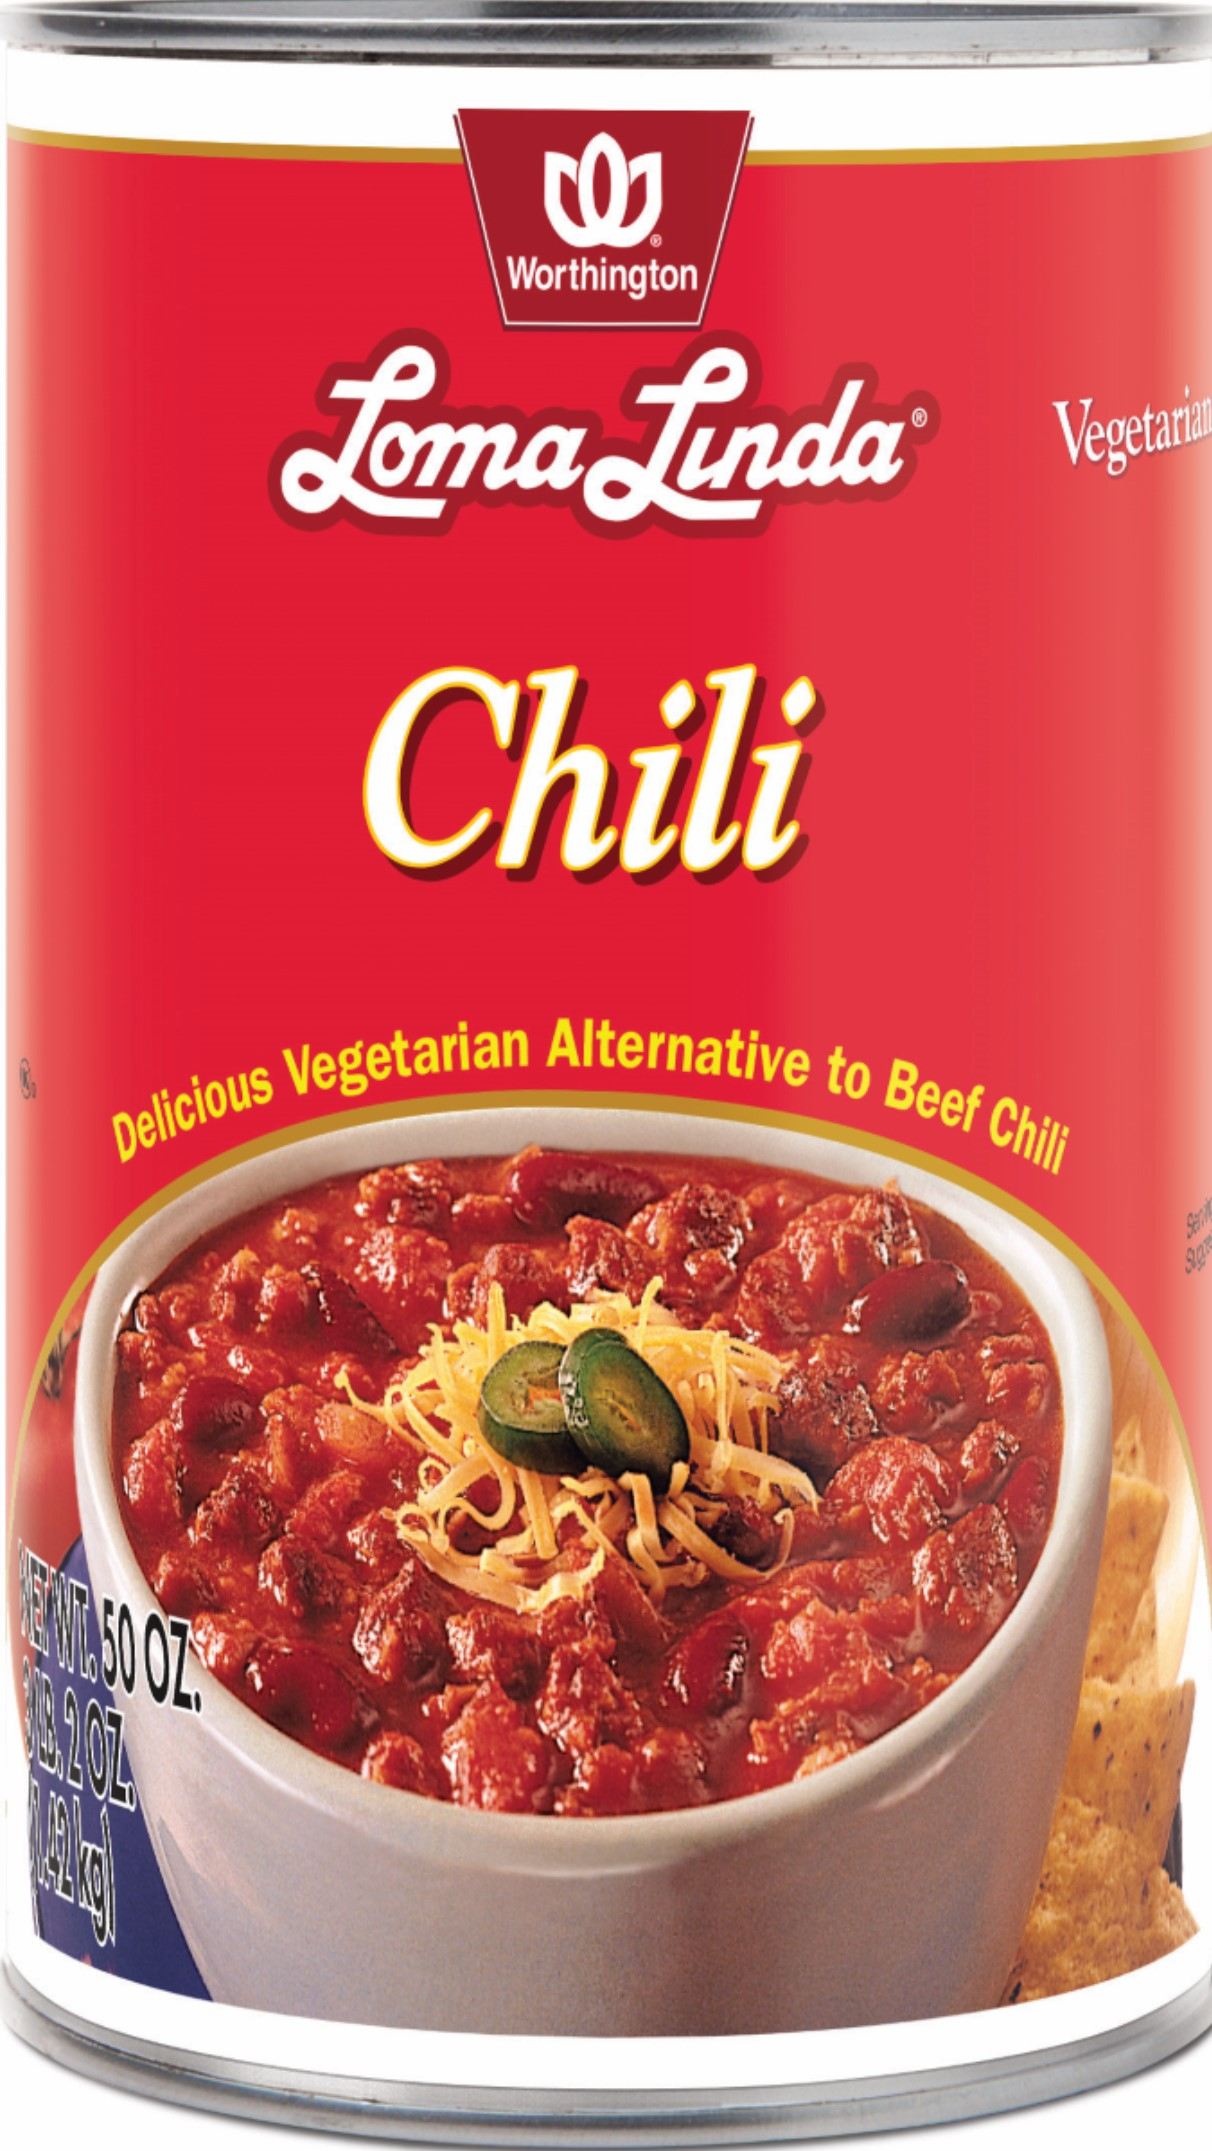 CHILI WR FAMILY SIZE,WORTHINGTON,4556100052